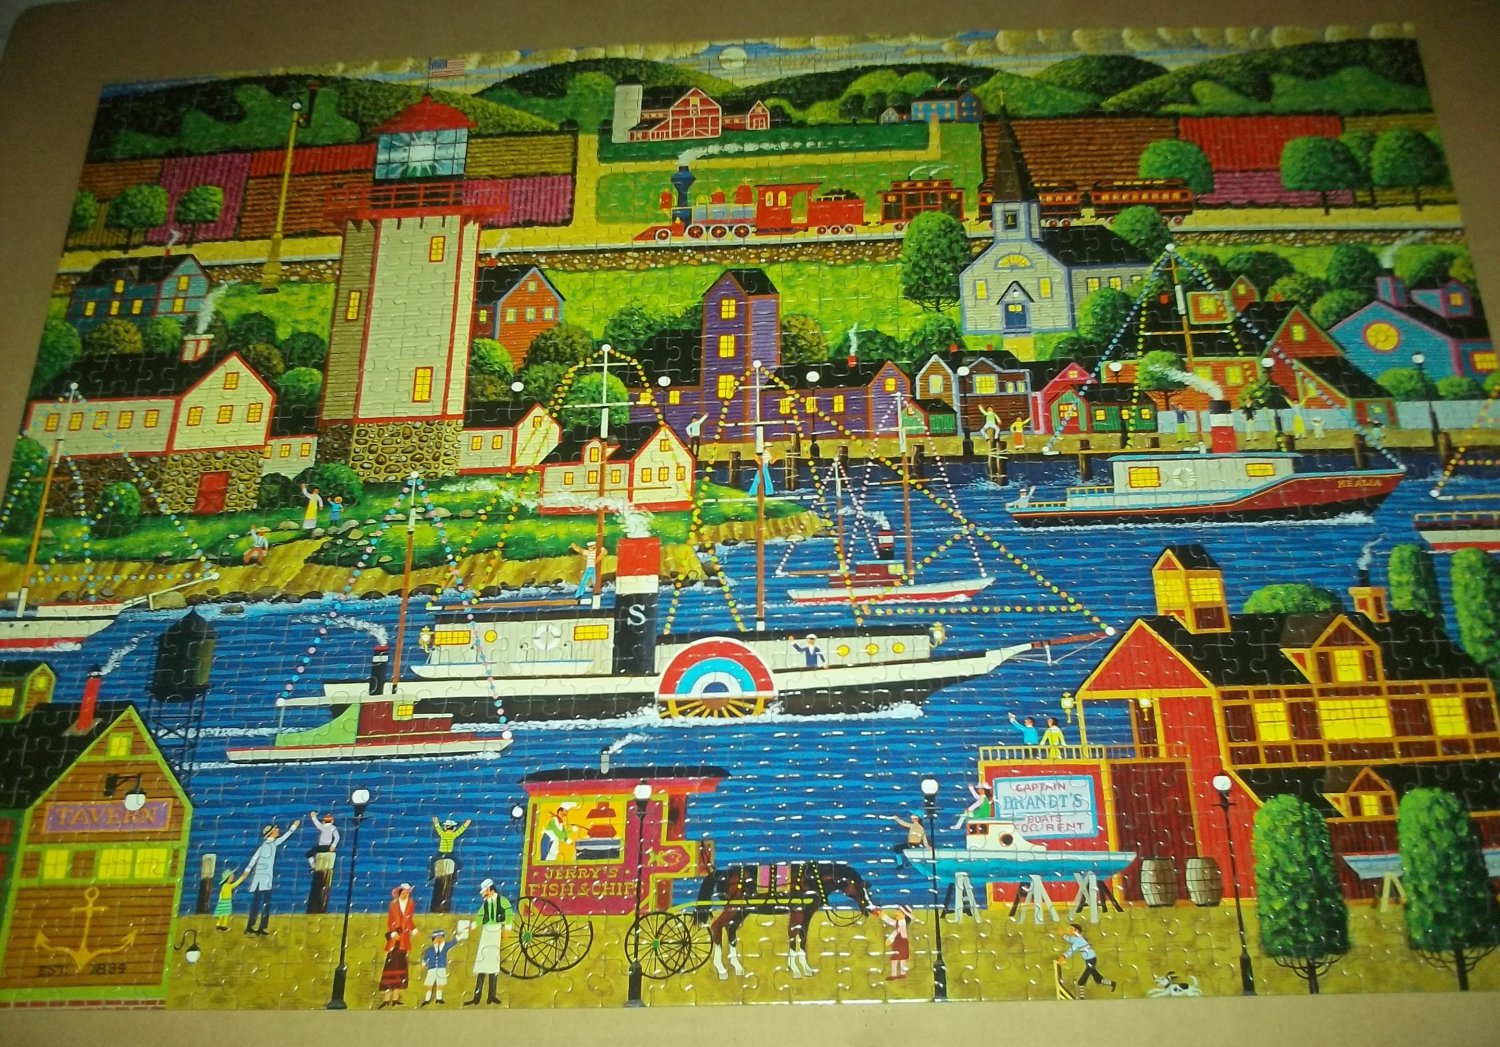 MEGA HOMETOWN COLLECTION JIGSAW PUZZLE HERONIM WYSOCKI Boat Parade COMPLETE Waterfront